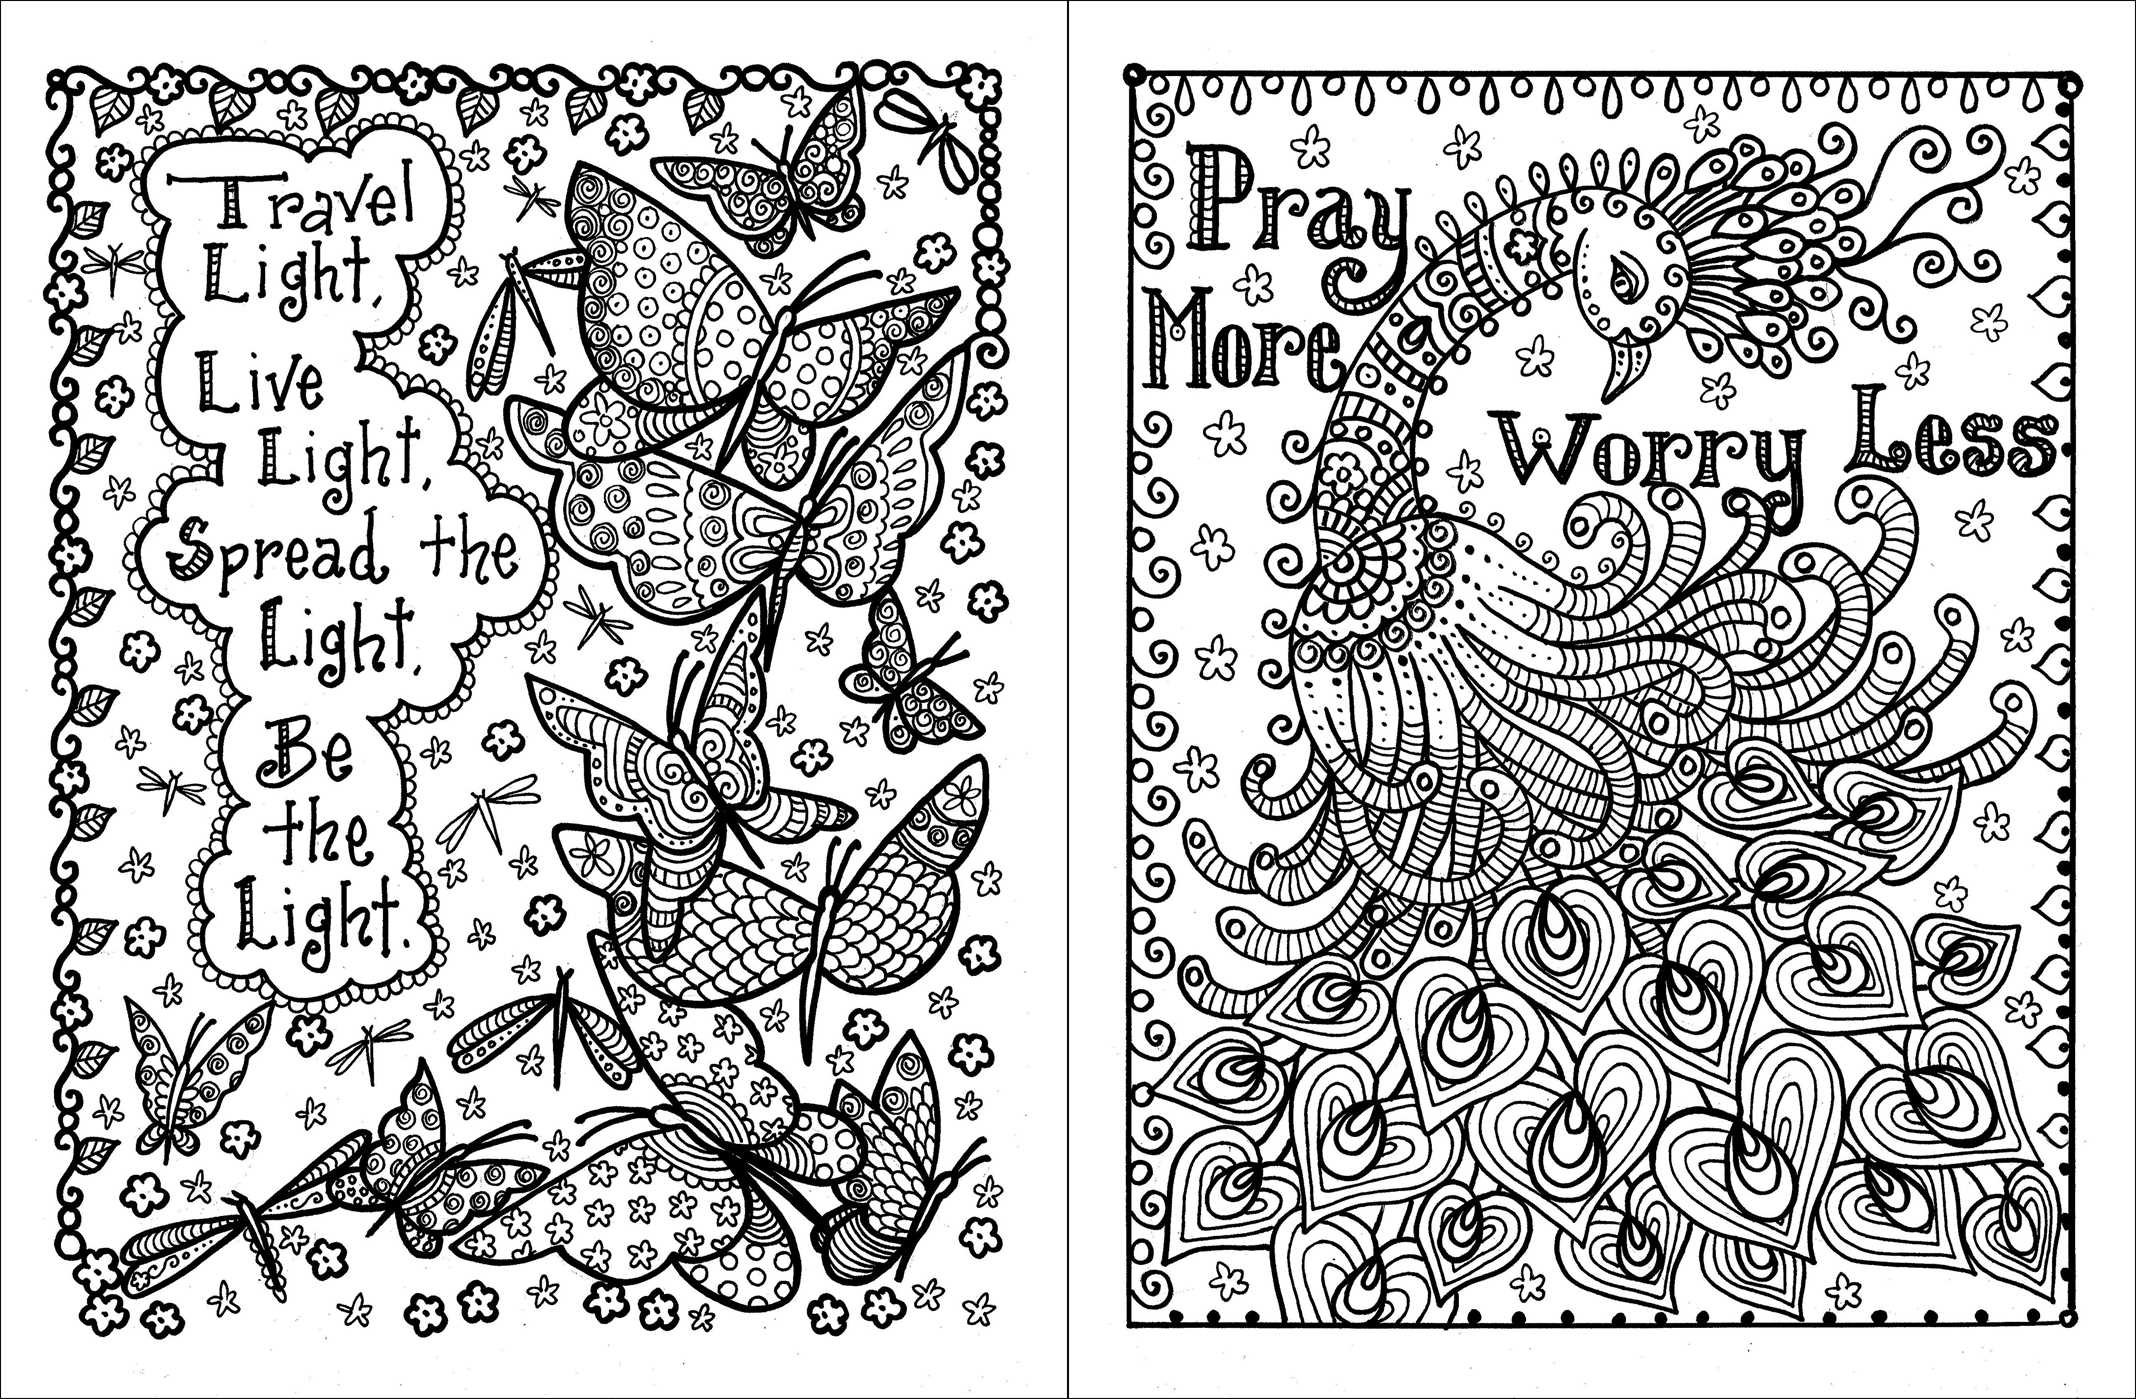 amazoncom posh adult coloring book inspirational quotes for fun relaxation deborah muller posh coloring books 9781449474188 deborah muller books - Inspirational Word Coloring Pages